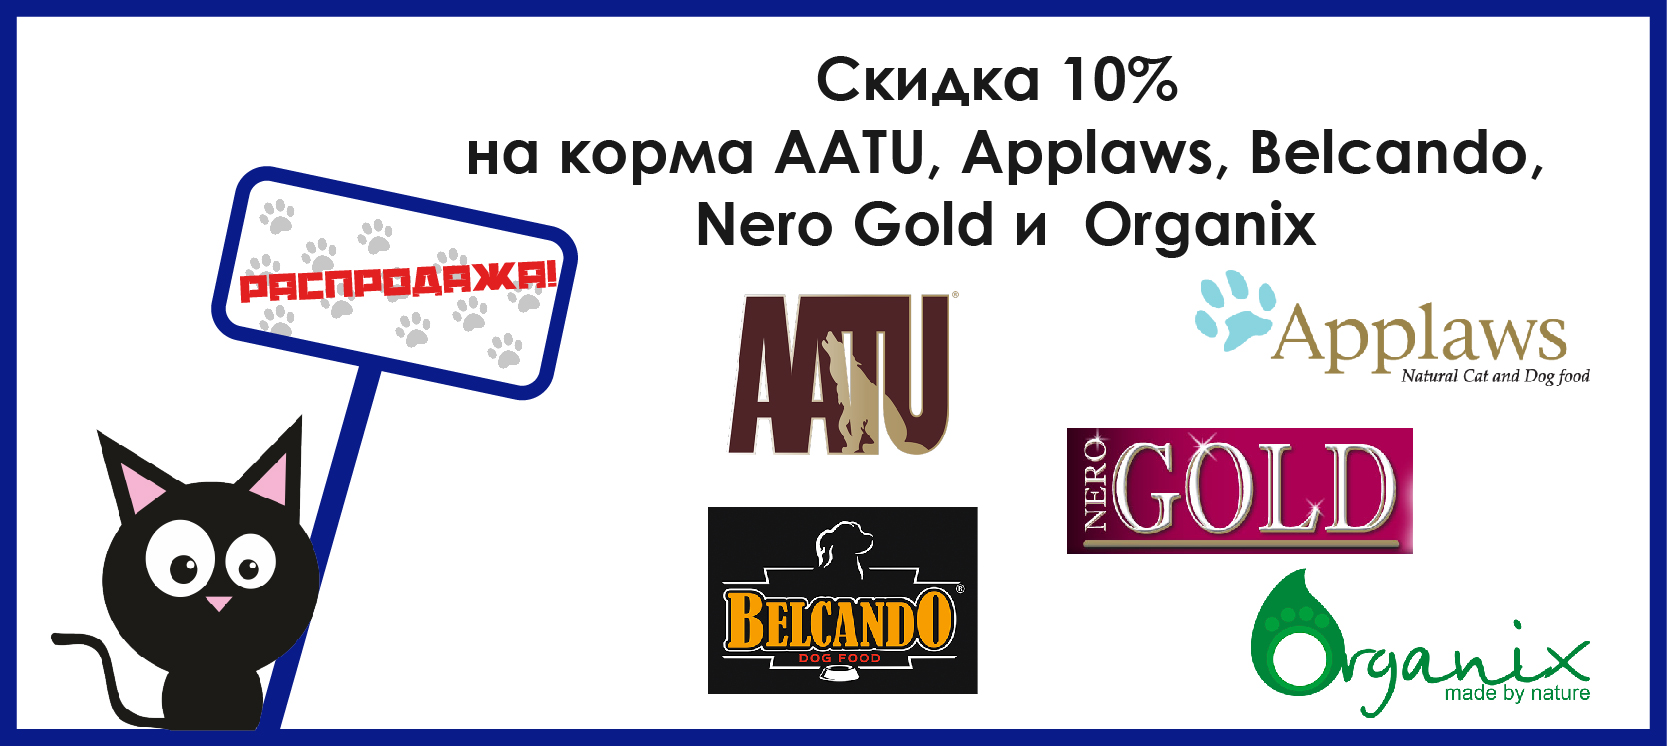 Скидка 10% на корма AATU, Applaws, Belcando, Nero Gold и Organix!